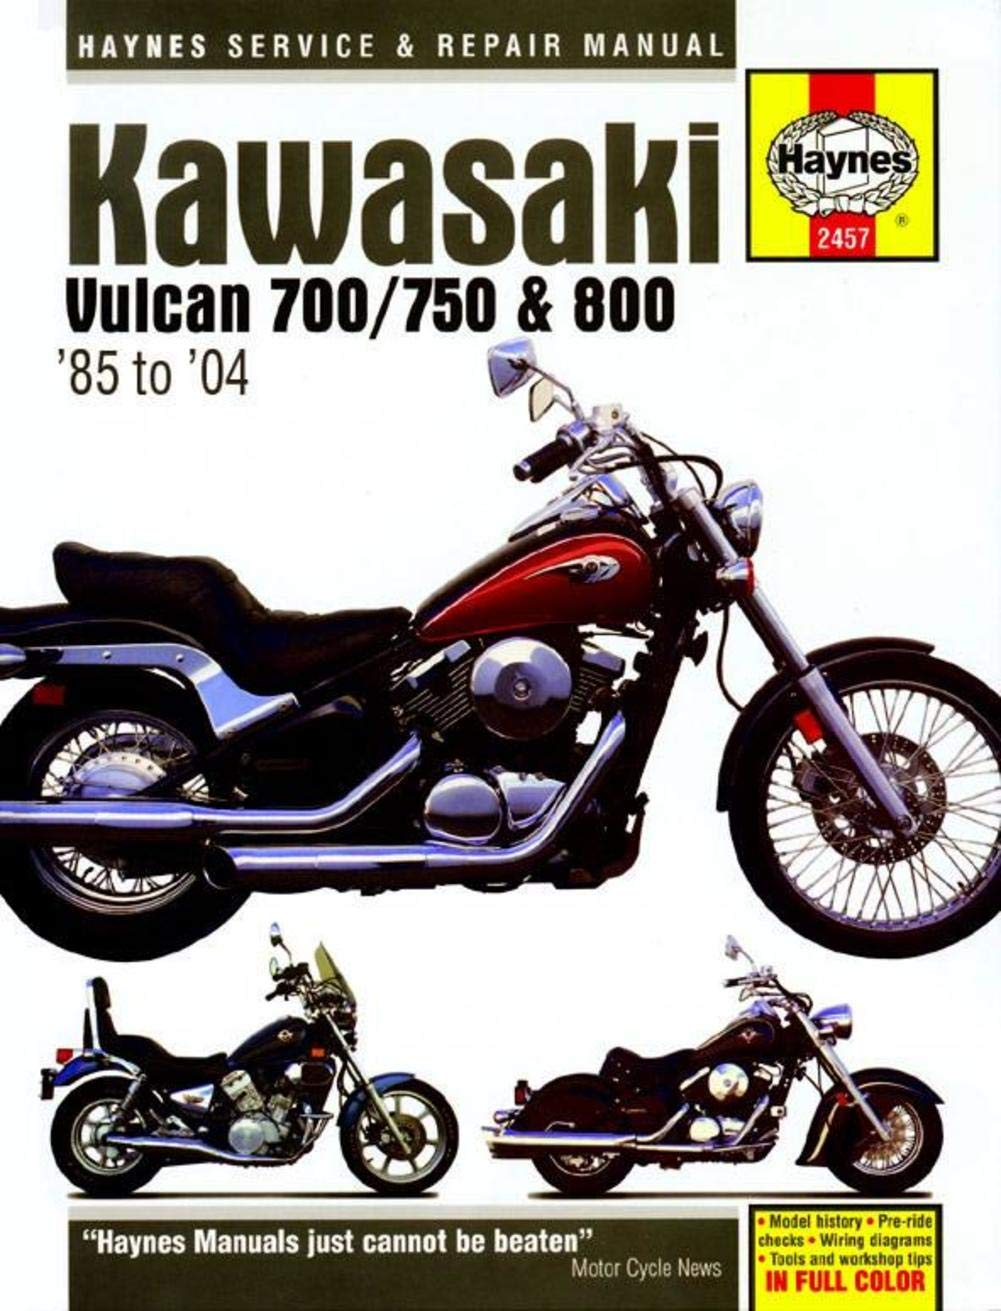 750 Kawasaki Motorcycle Wiring Diagram Reinvent Your 220 Engine Amazon Com Haynes Vulcan 700 800 Manual M2457 Automotive Rh 1982 Diagrams 200